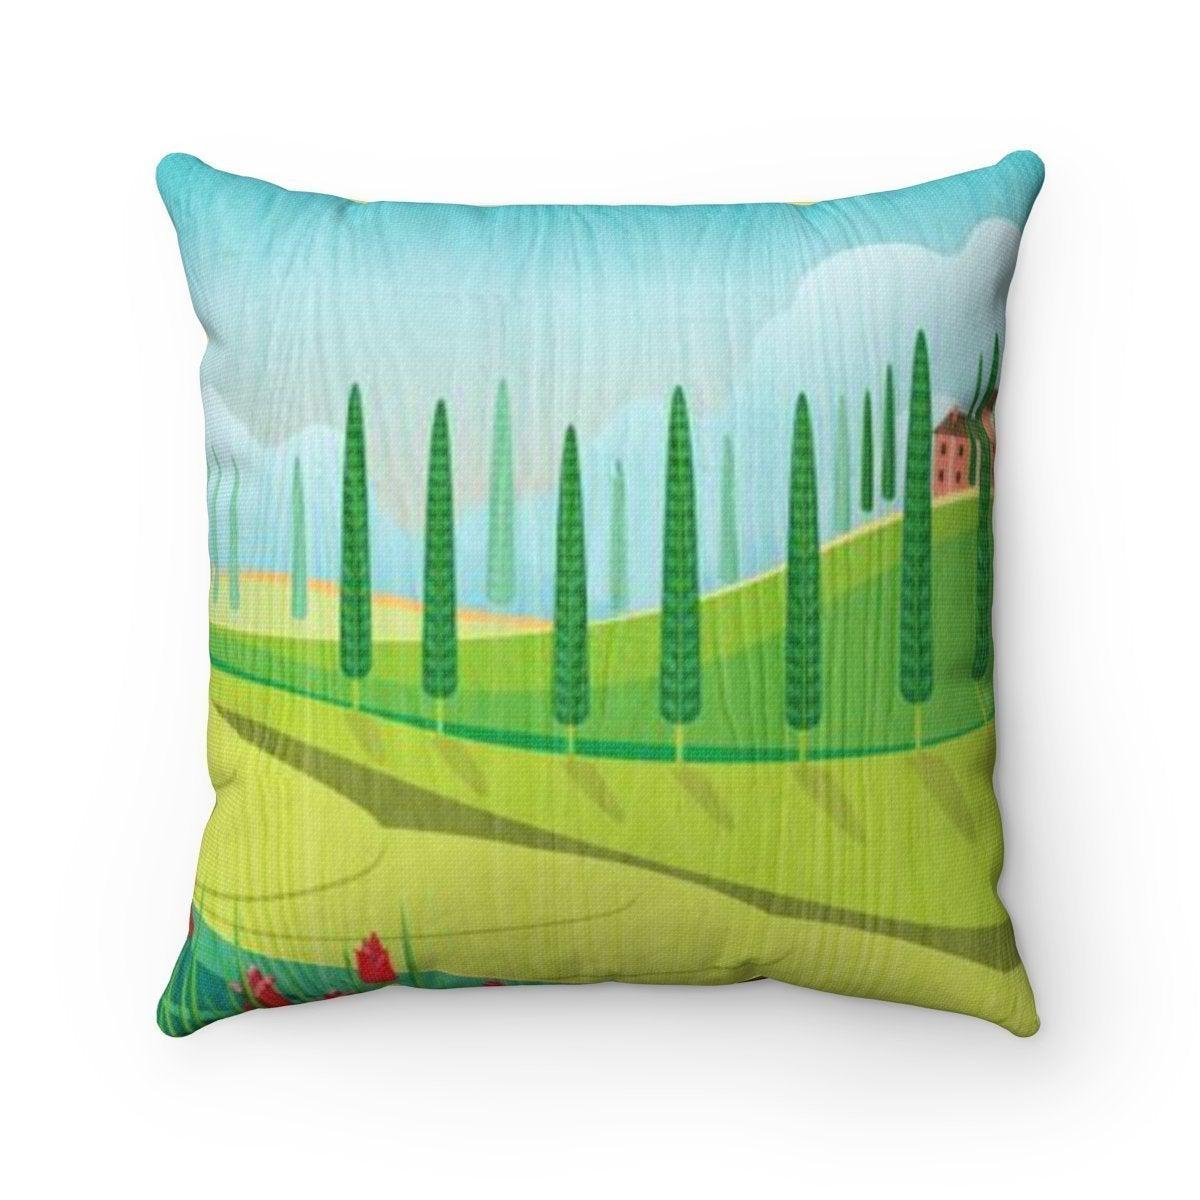 Tuscany decorative cushion cover-Home Decor - Decorative Accents - Pillows & Throws - Decorative Pillows-Maison d'Elite-14x14-Très Elite